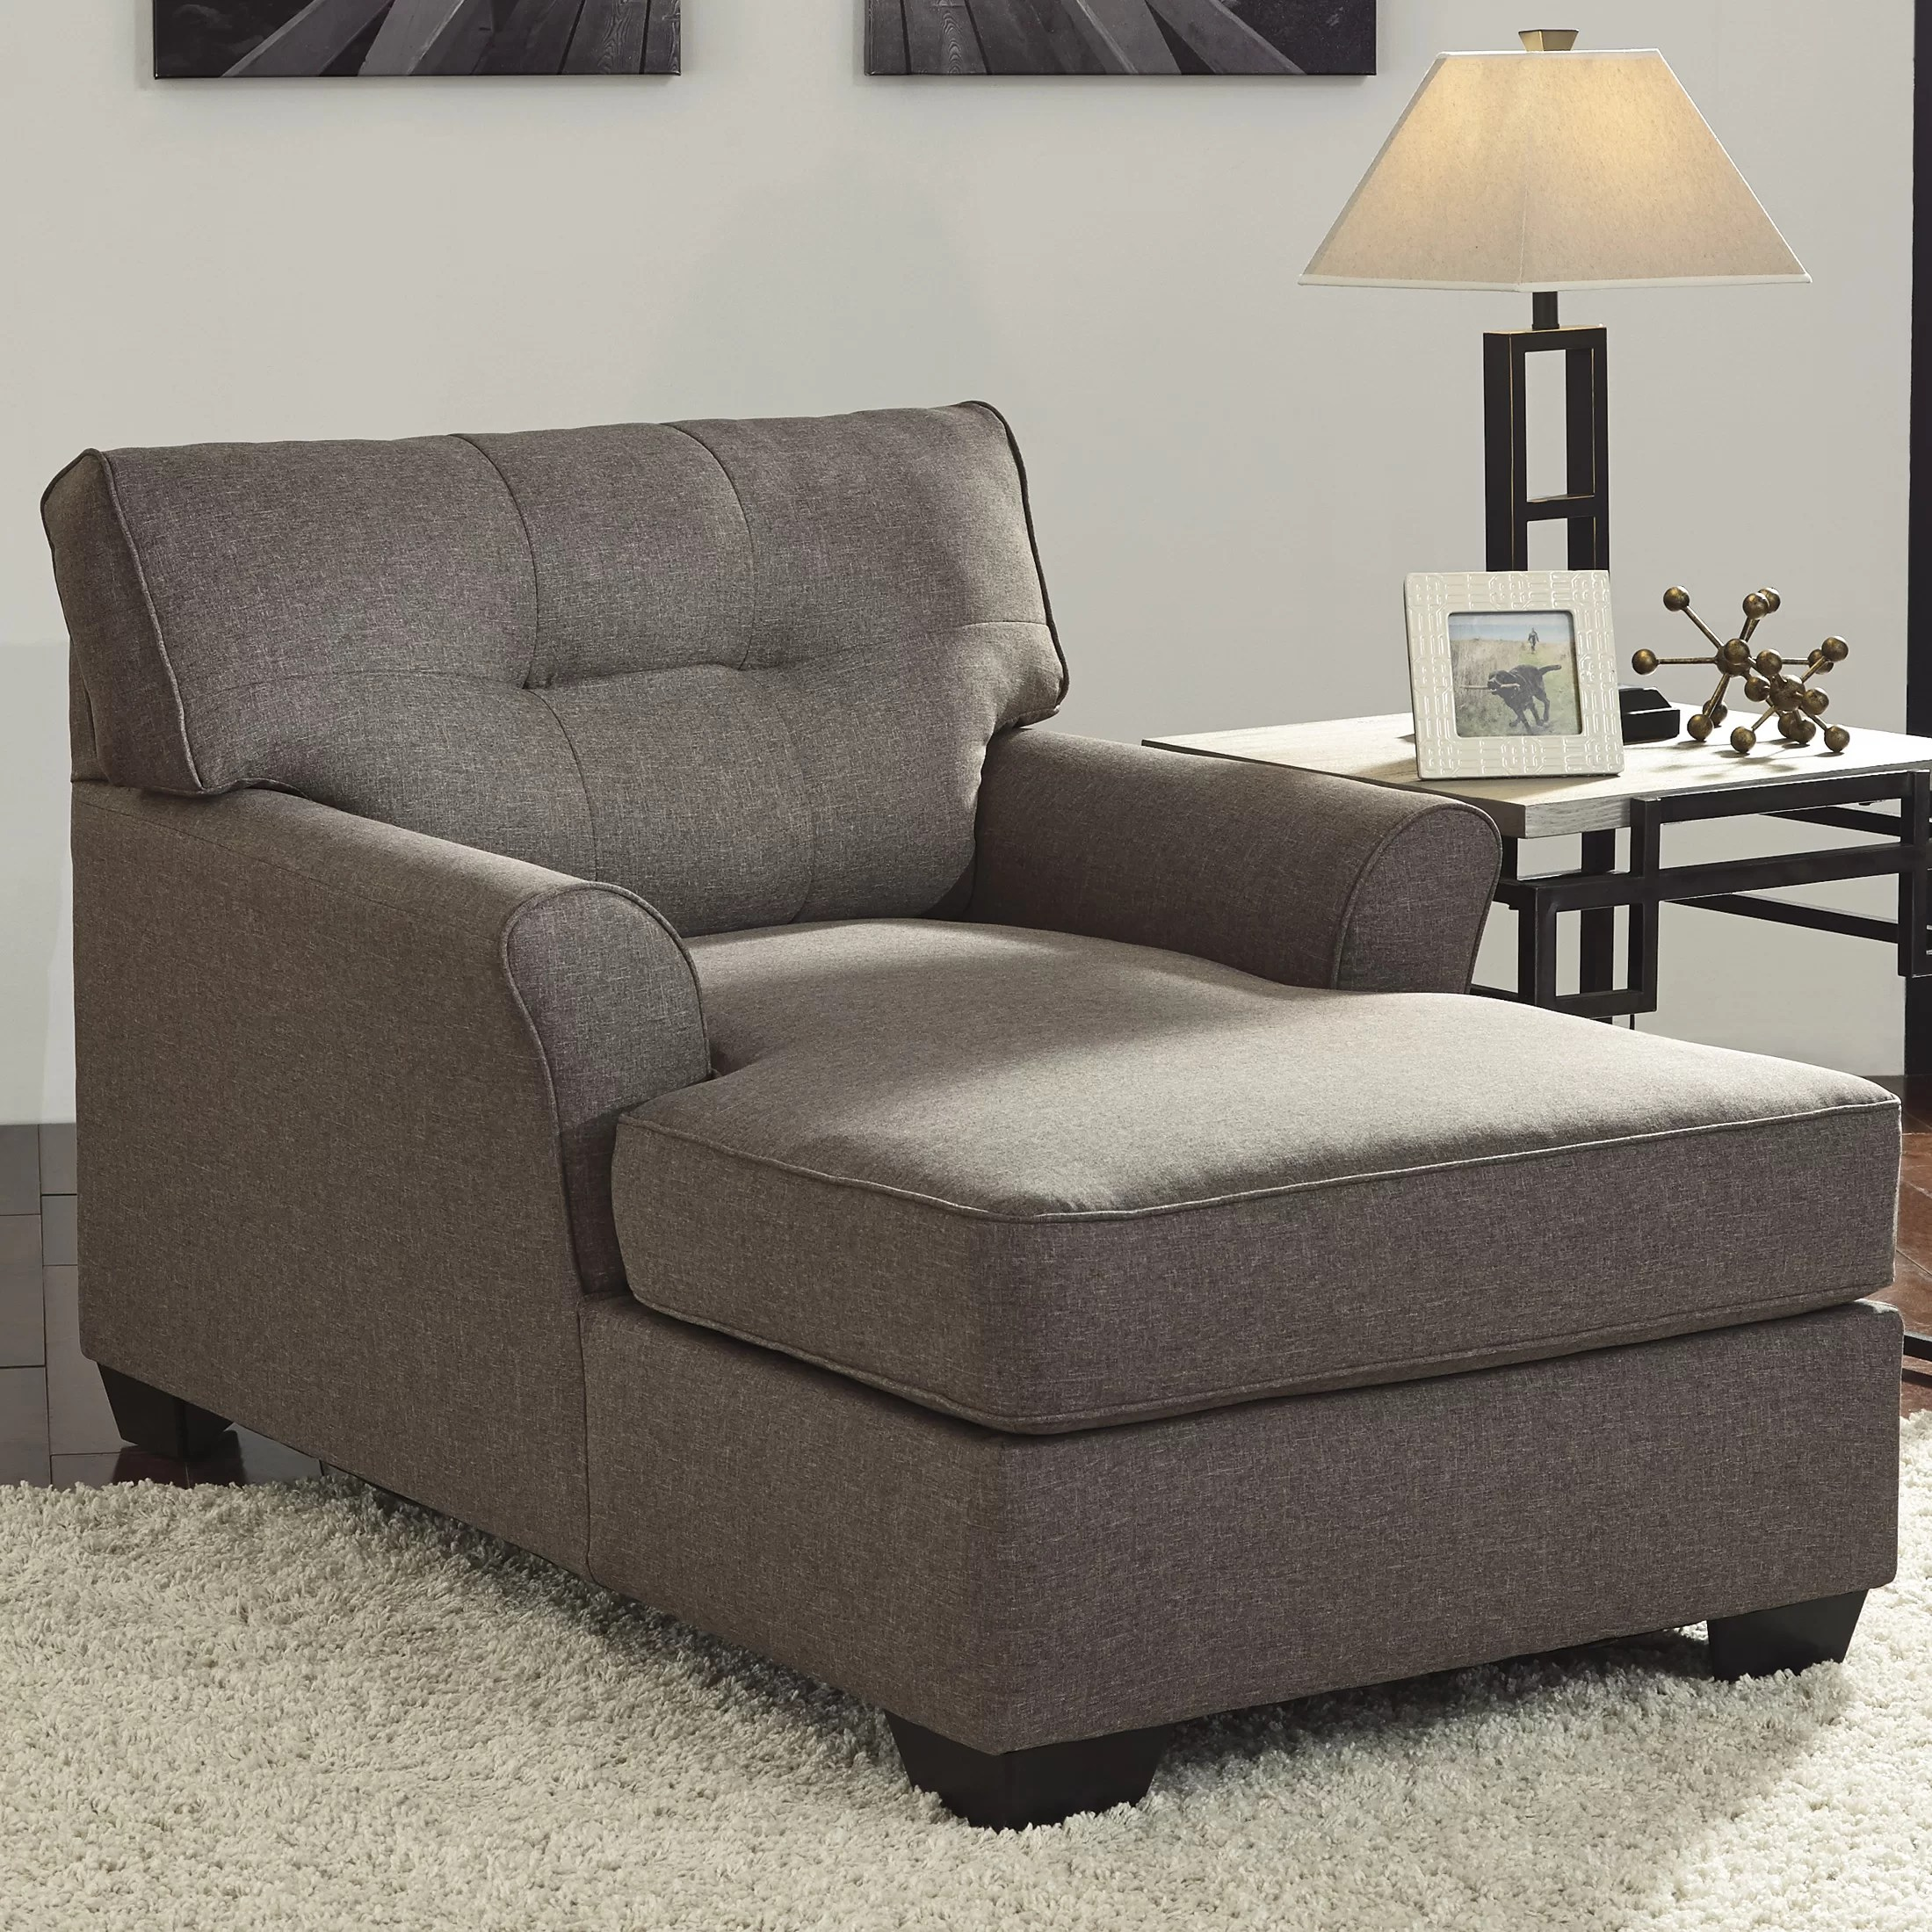 Living Room Chaise Lounge Chairs Signature Design By Ashley Tibbee Chaise Lounge And Reviews